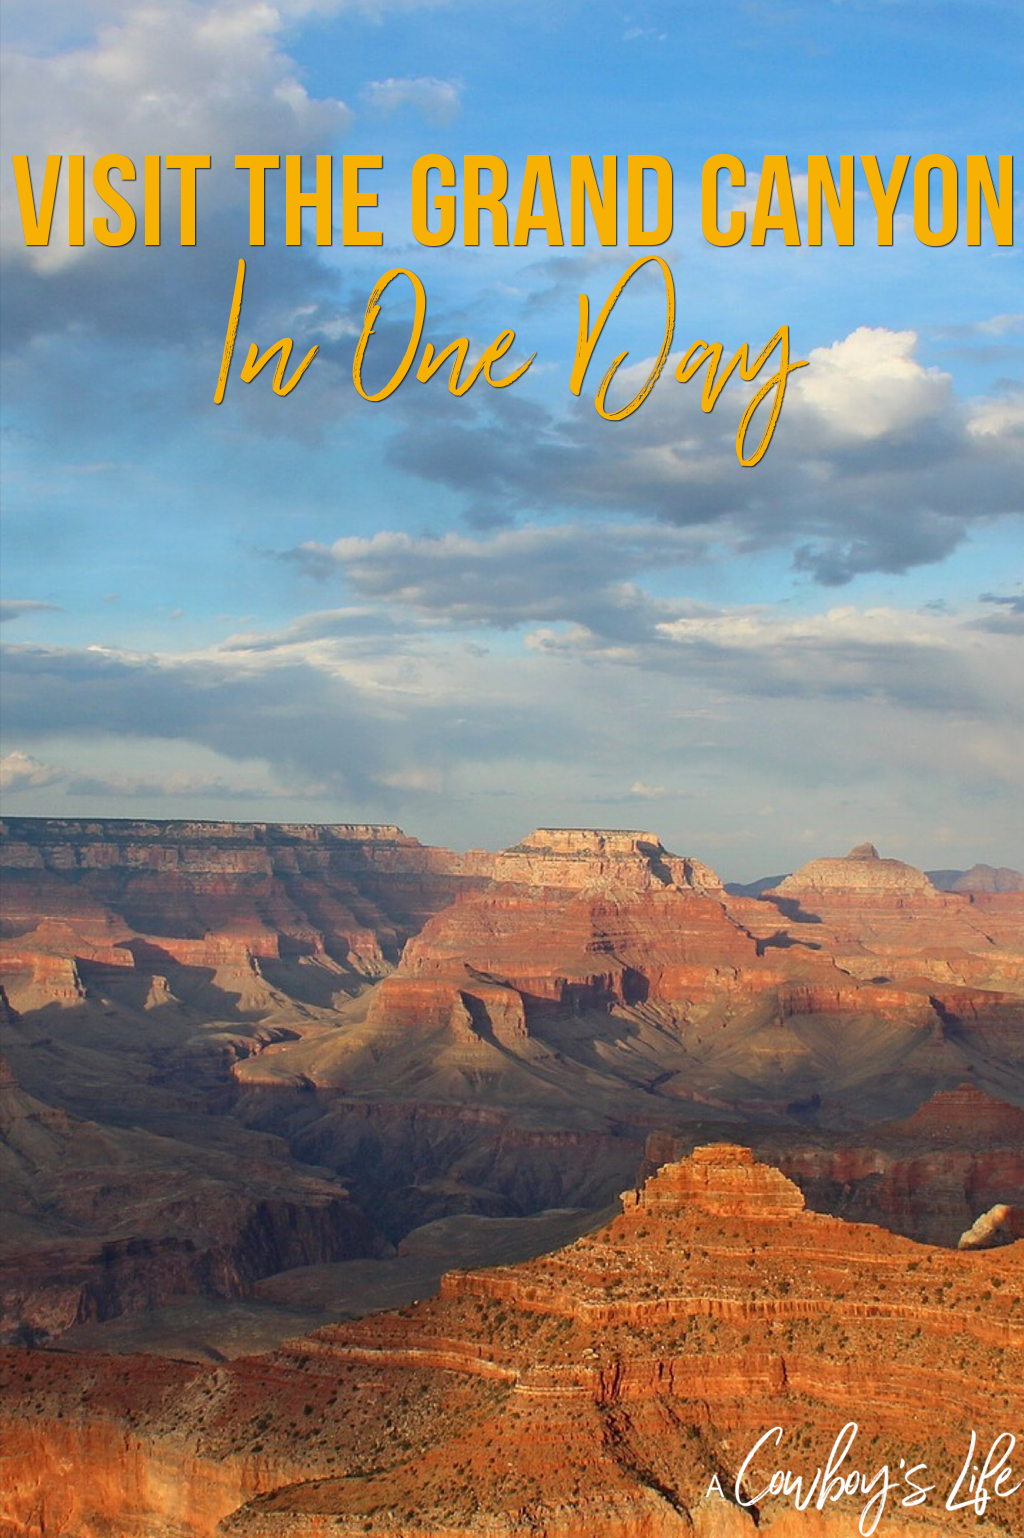 Visit the Grand Canyon in One Day